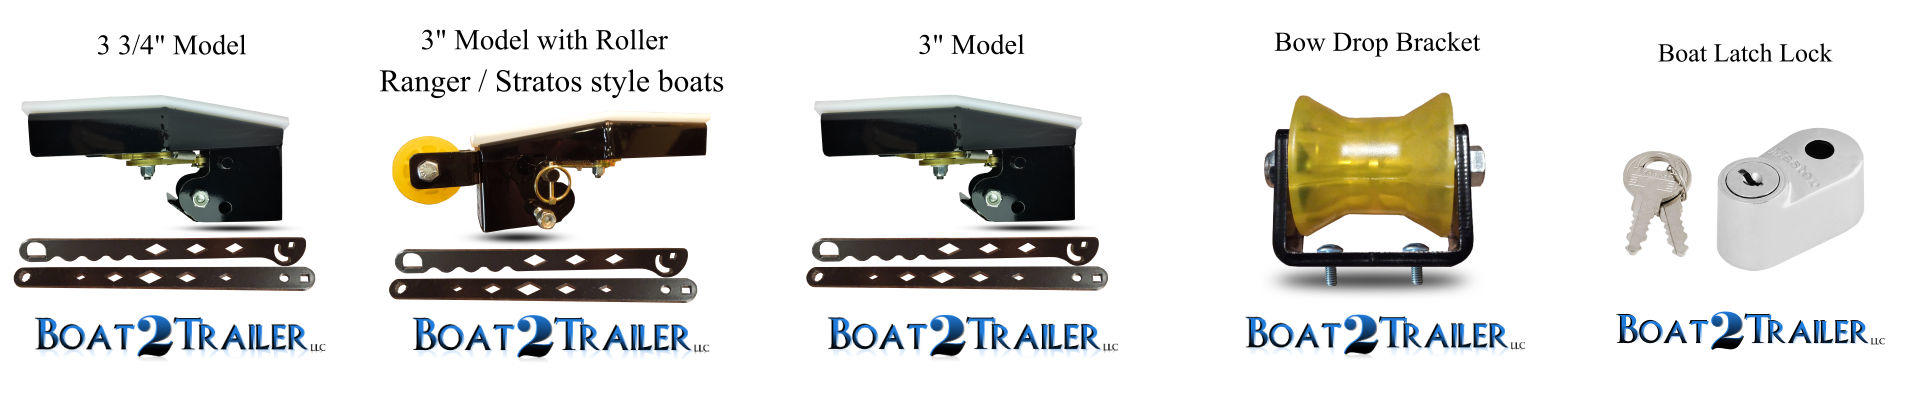 Drotto Boat Latch Buy Now